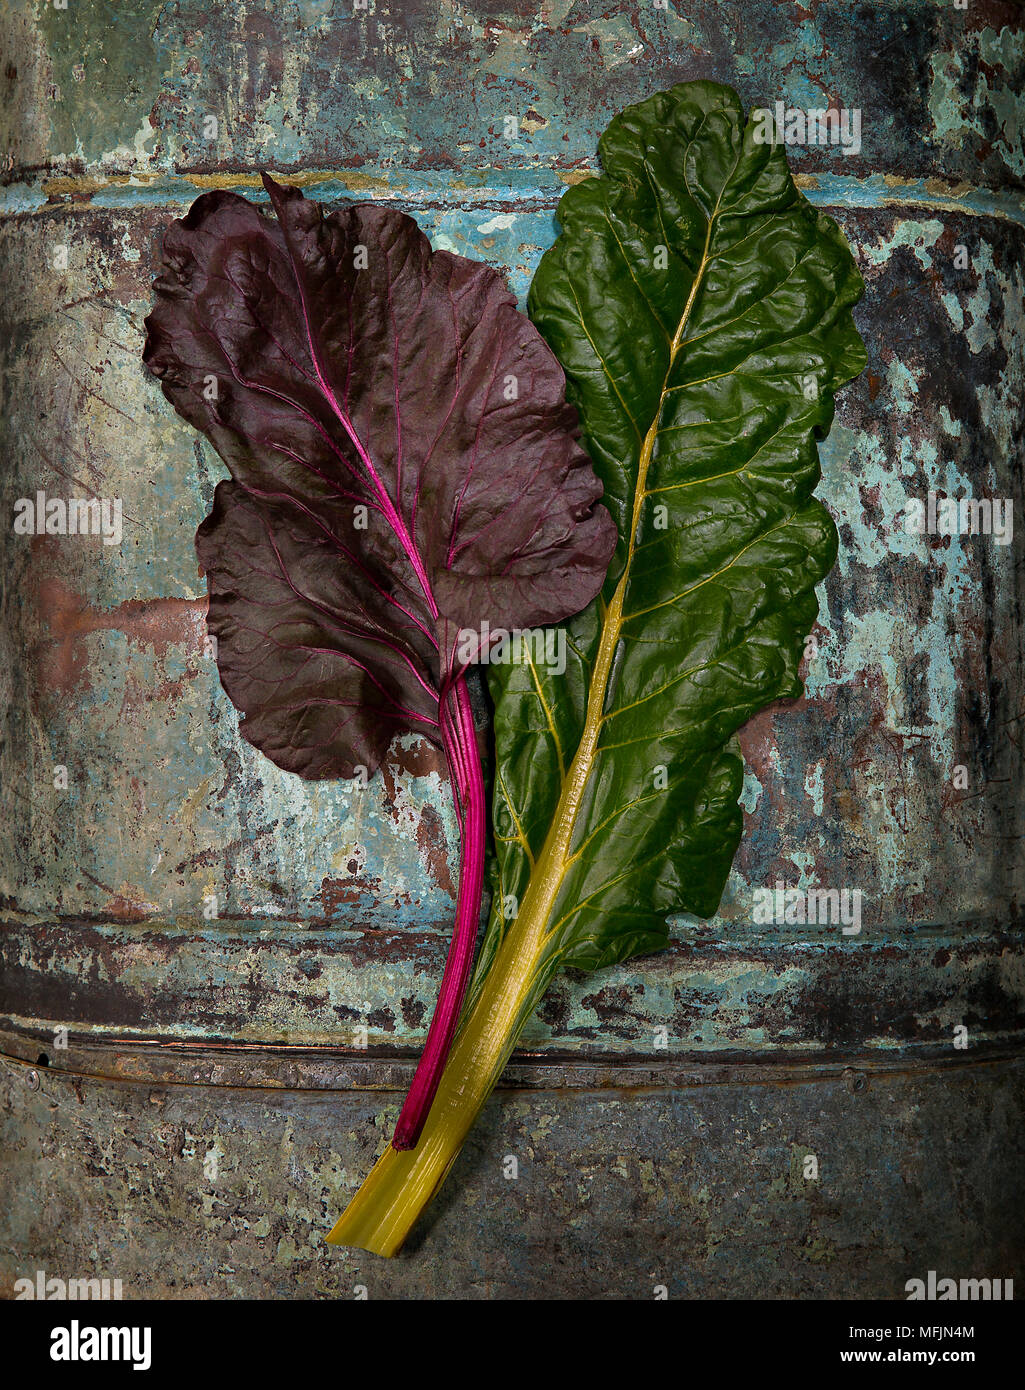 Studio still life of Swiss Chard on a barn wood background. - Stock Image